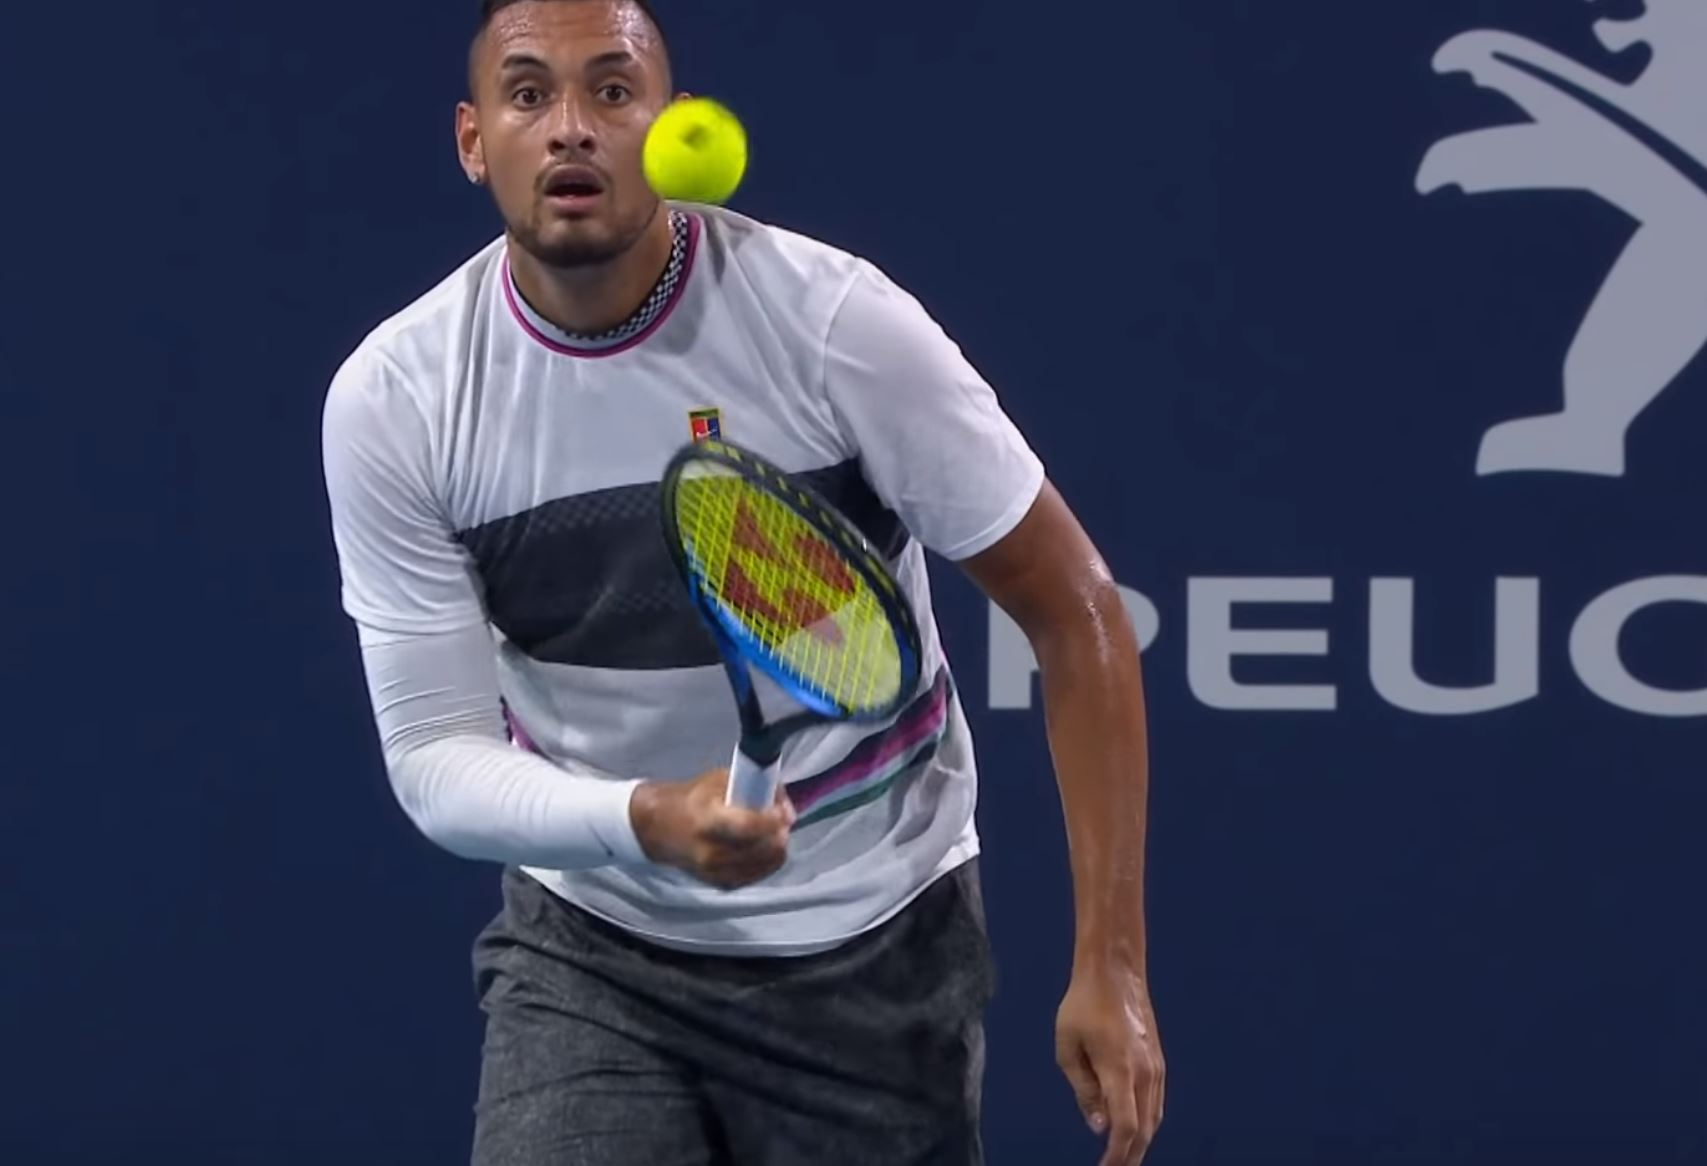 The King of the Underhand Serve? Nick Kyrgios